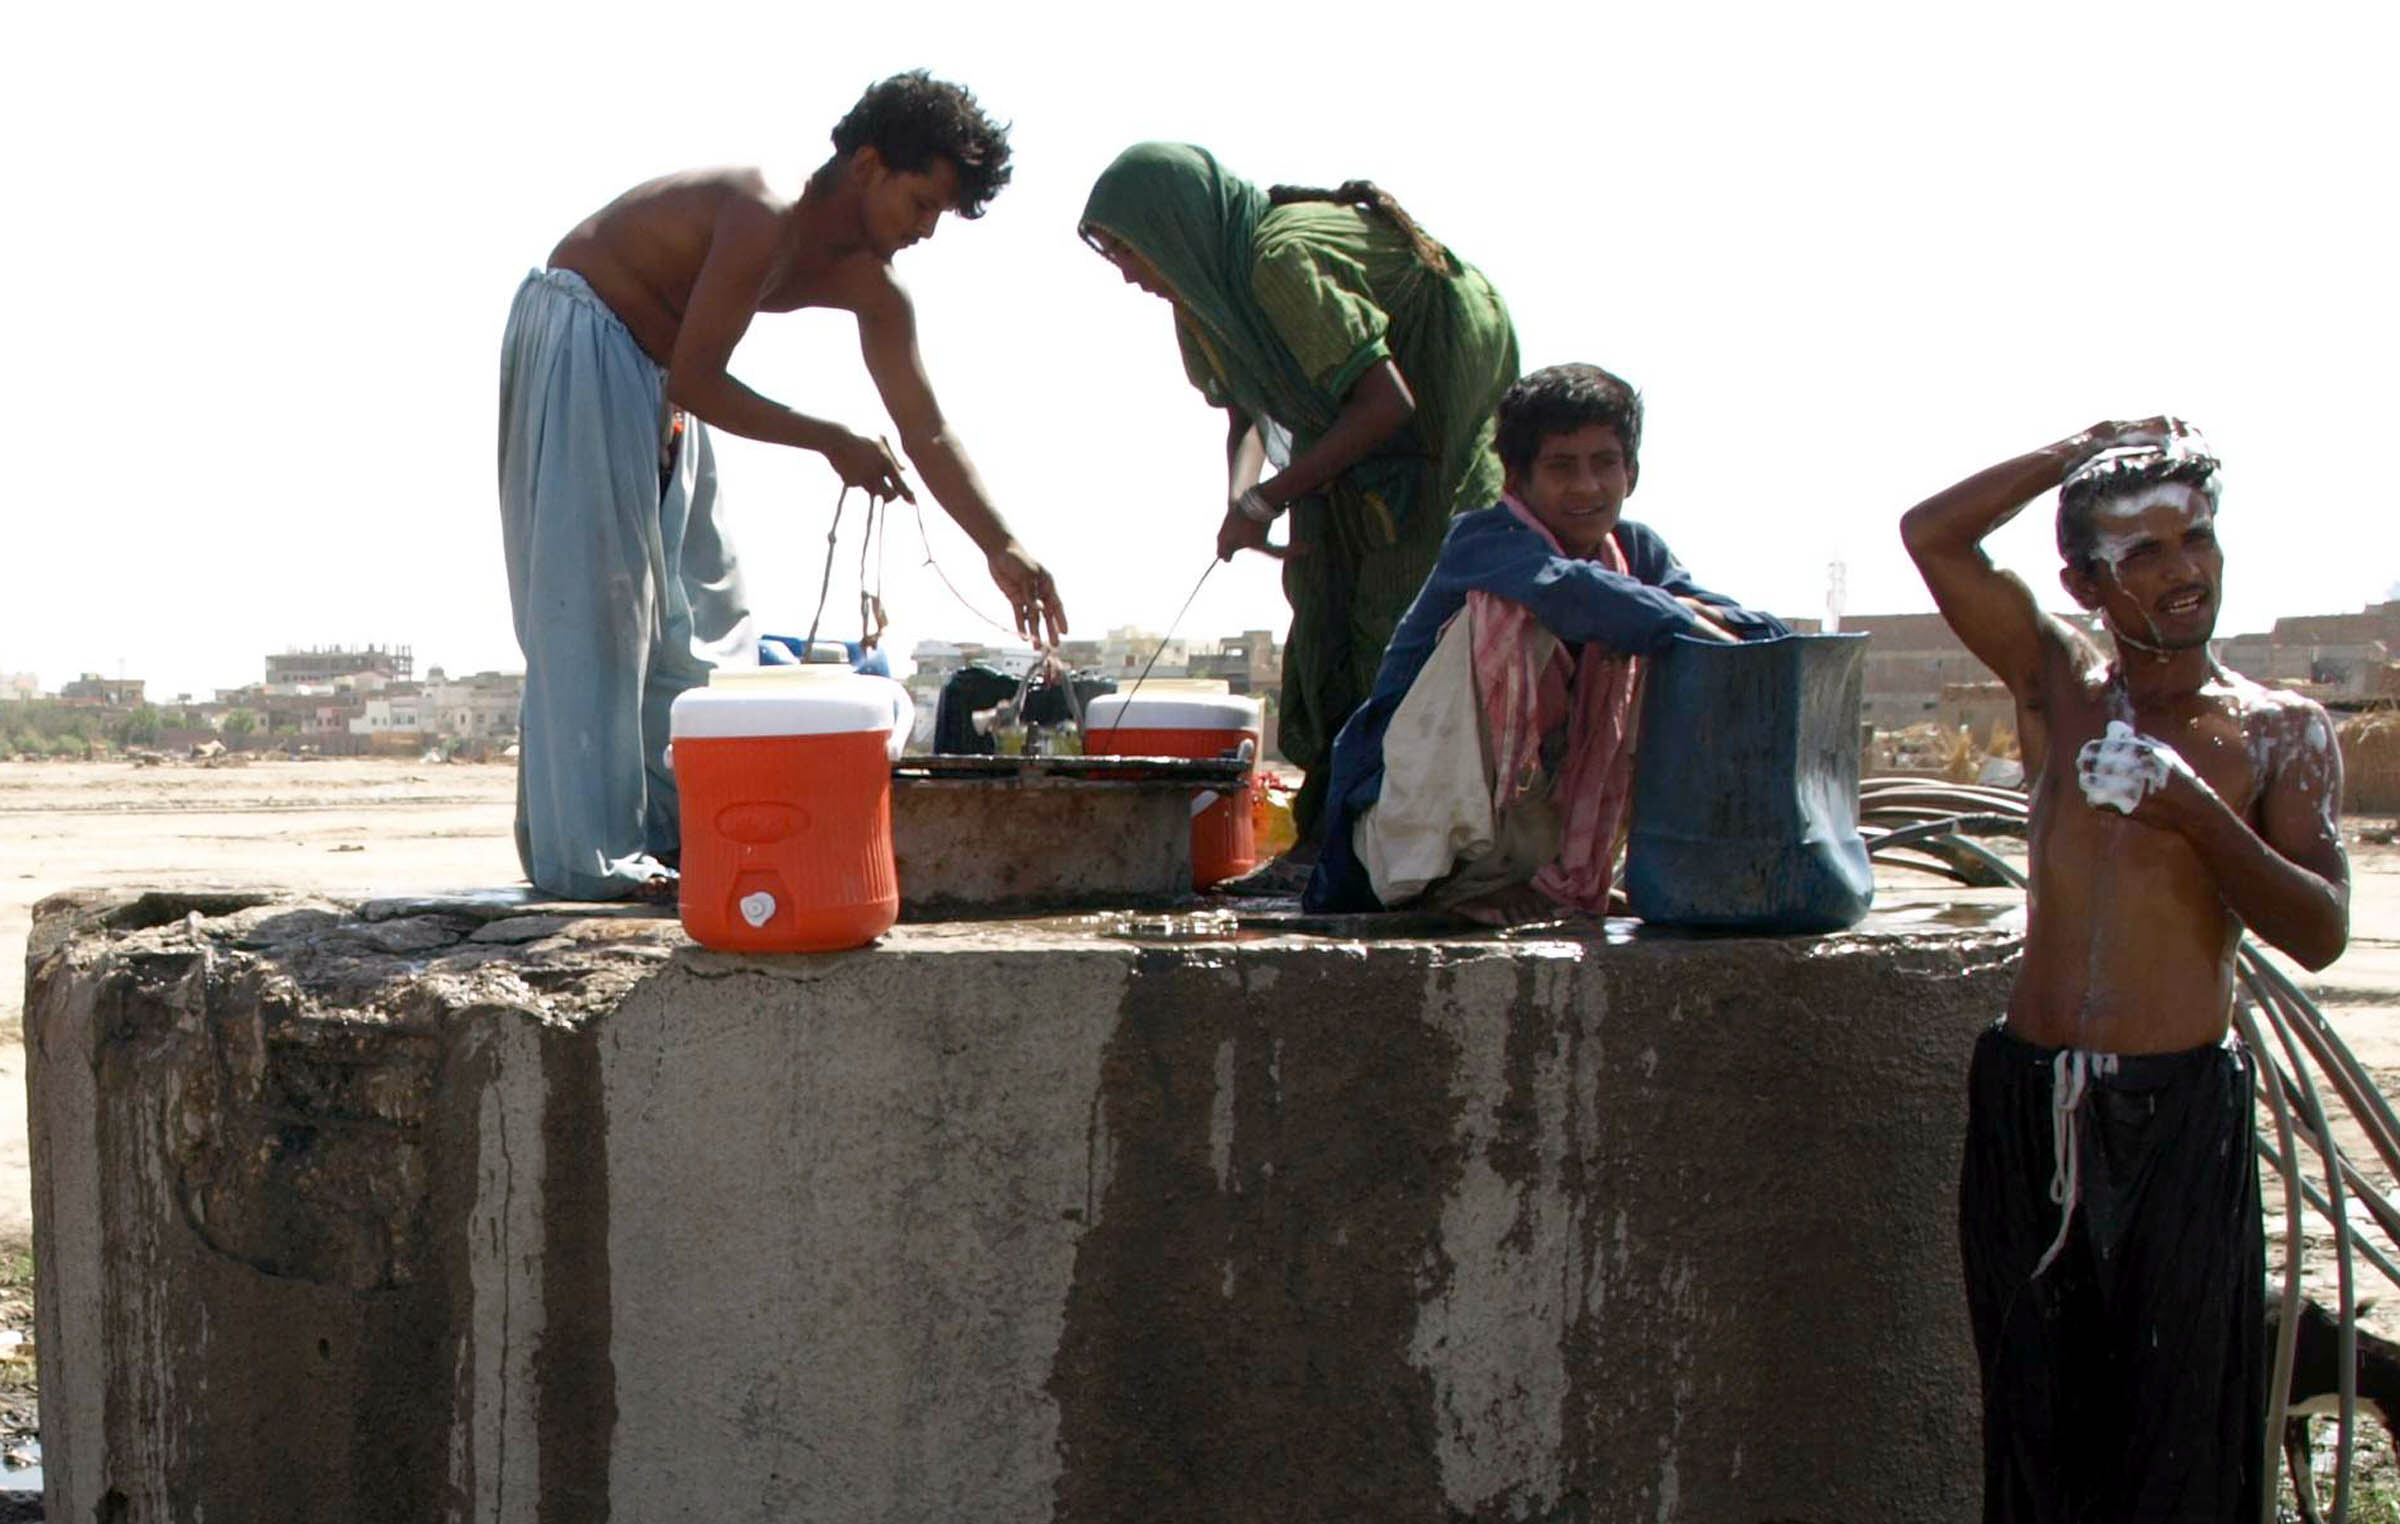 people taking drinking water from the water tank of wasa in hyderabad photo file